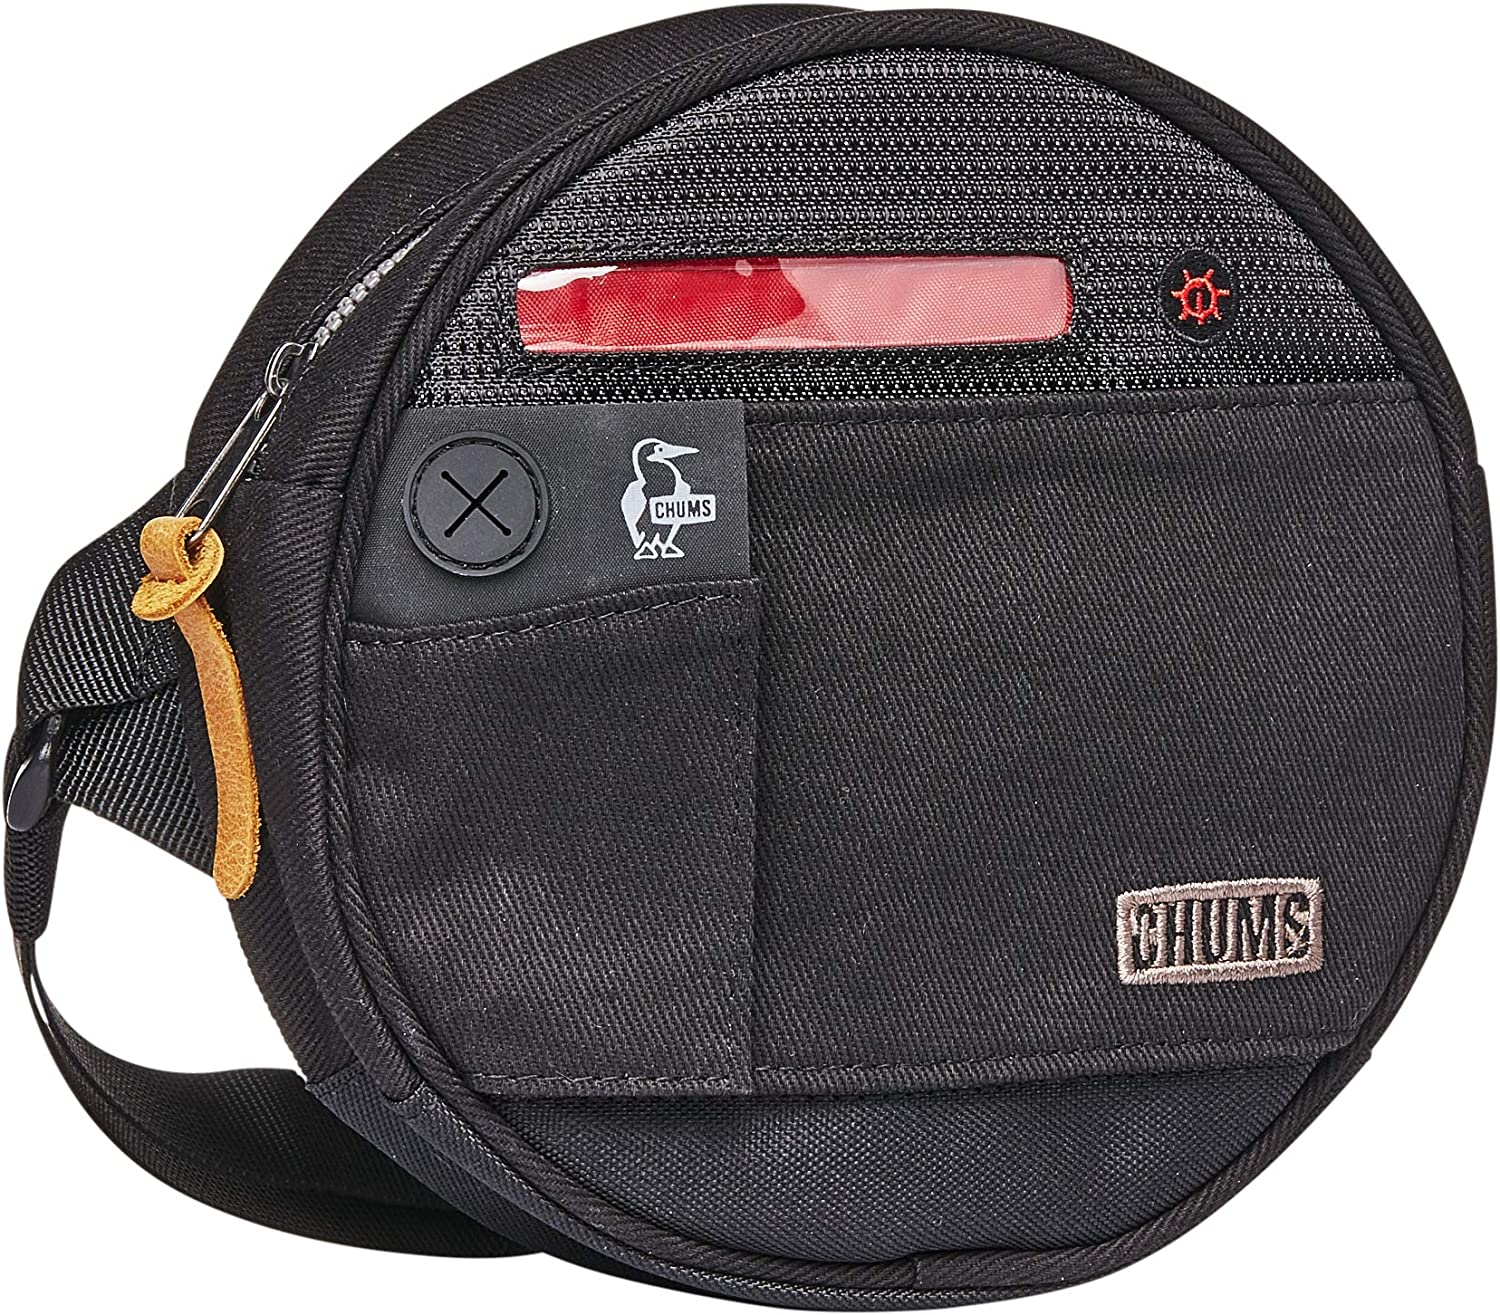 Chums Hi Beam Round Reflective LED Waist Pack Shoulder Bag Bike Mount